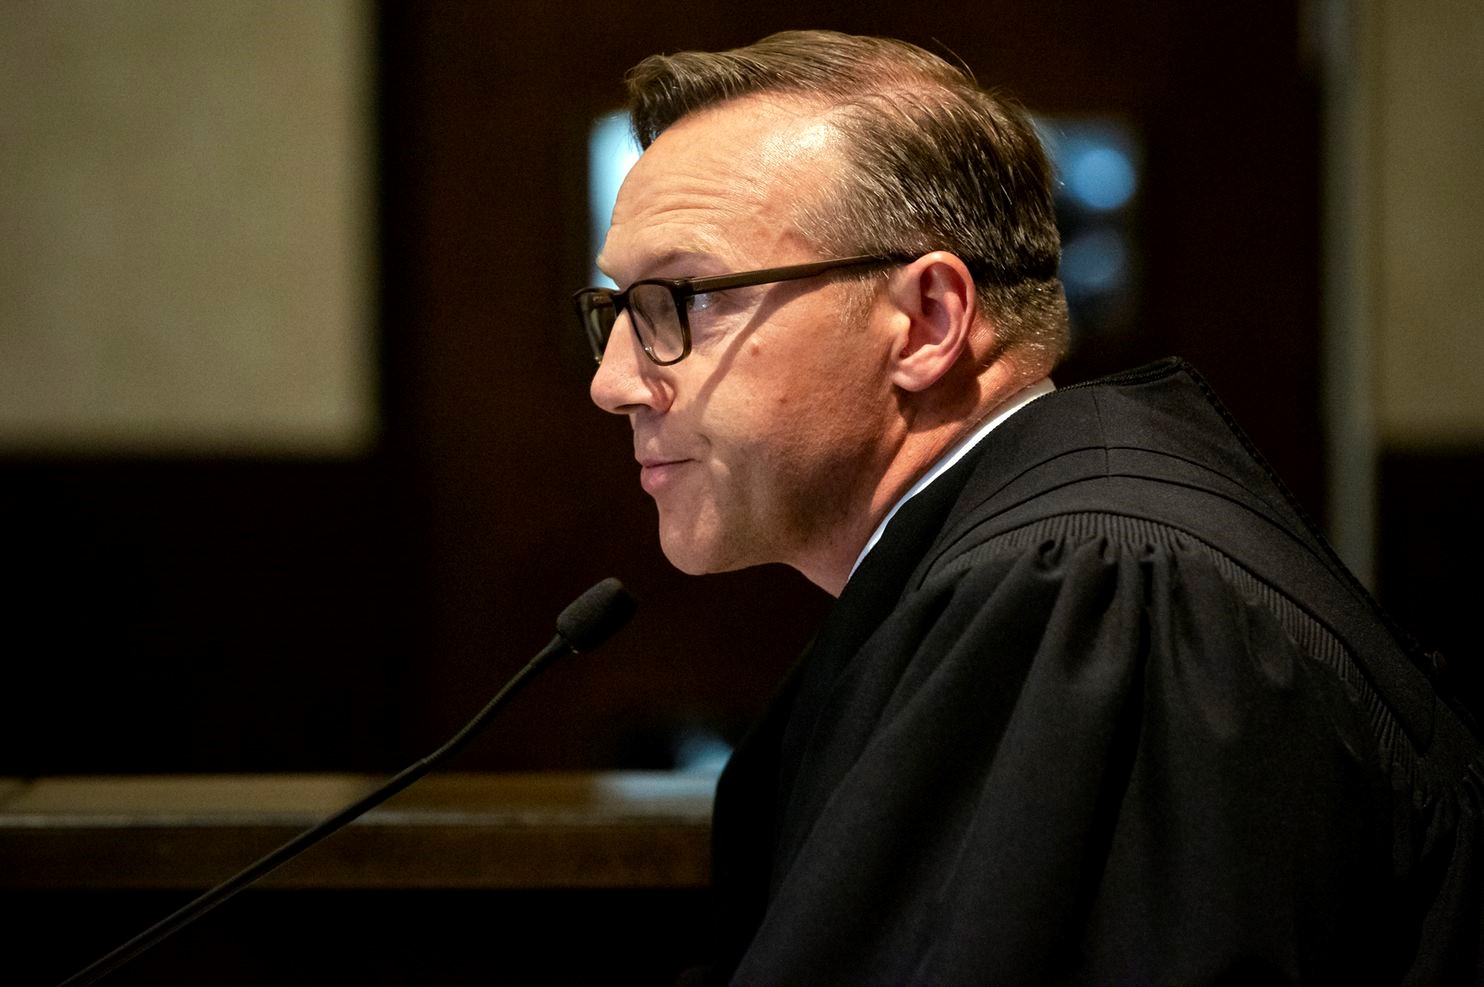 Cleveland County, Okla., District Judge Thad Balkman reads his Aug. 26 decision ordering Johnson & Johnson to pay the state of Oklahoma $572 million to help abate the opioid crisis. (Chris Landsberger/AP), from  https://www.washingtonpost.com/opinions/2019/09/09/lawsuits-against-companies-arent-just-about-getting-money-theyre-about-revealing-truth/